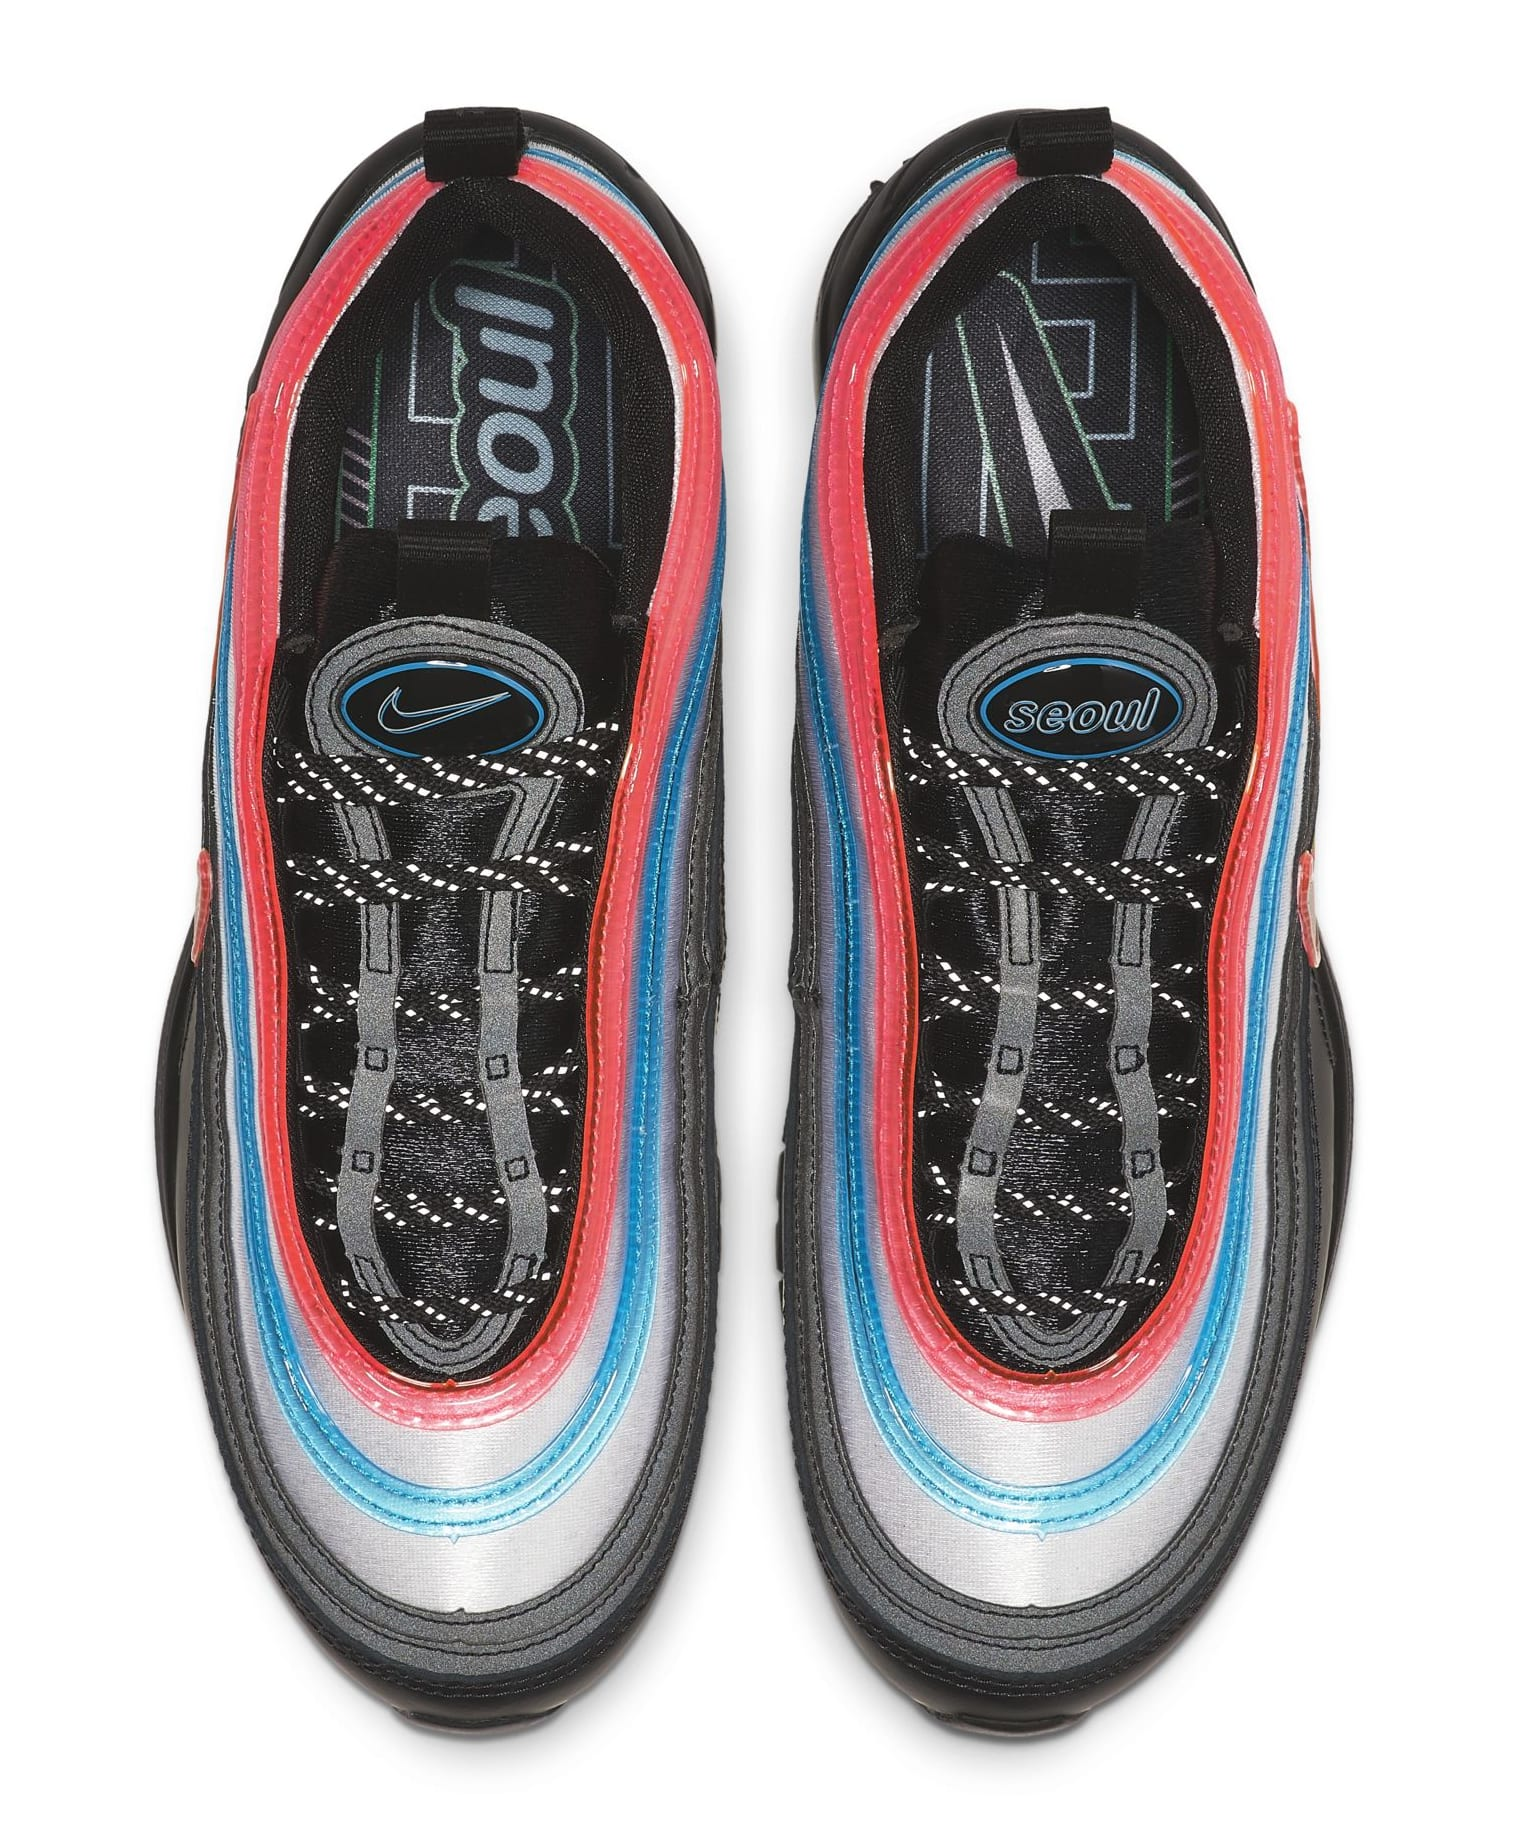 cbc805d3 Nike Air Max 97 'Neon Seoul' Release Date April 2019 | Sole Collector